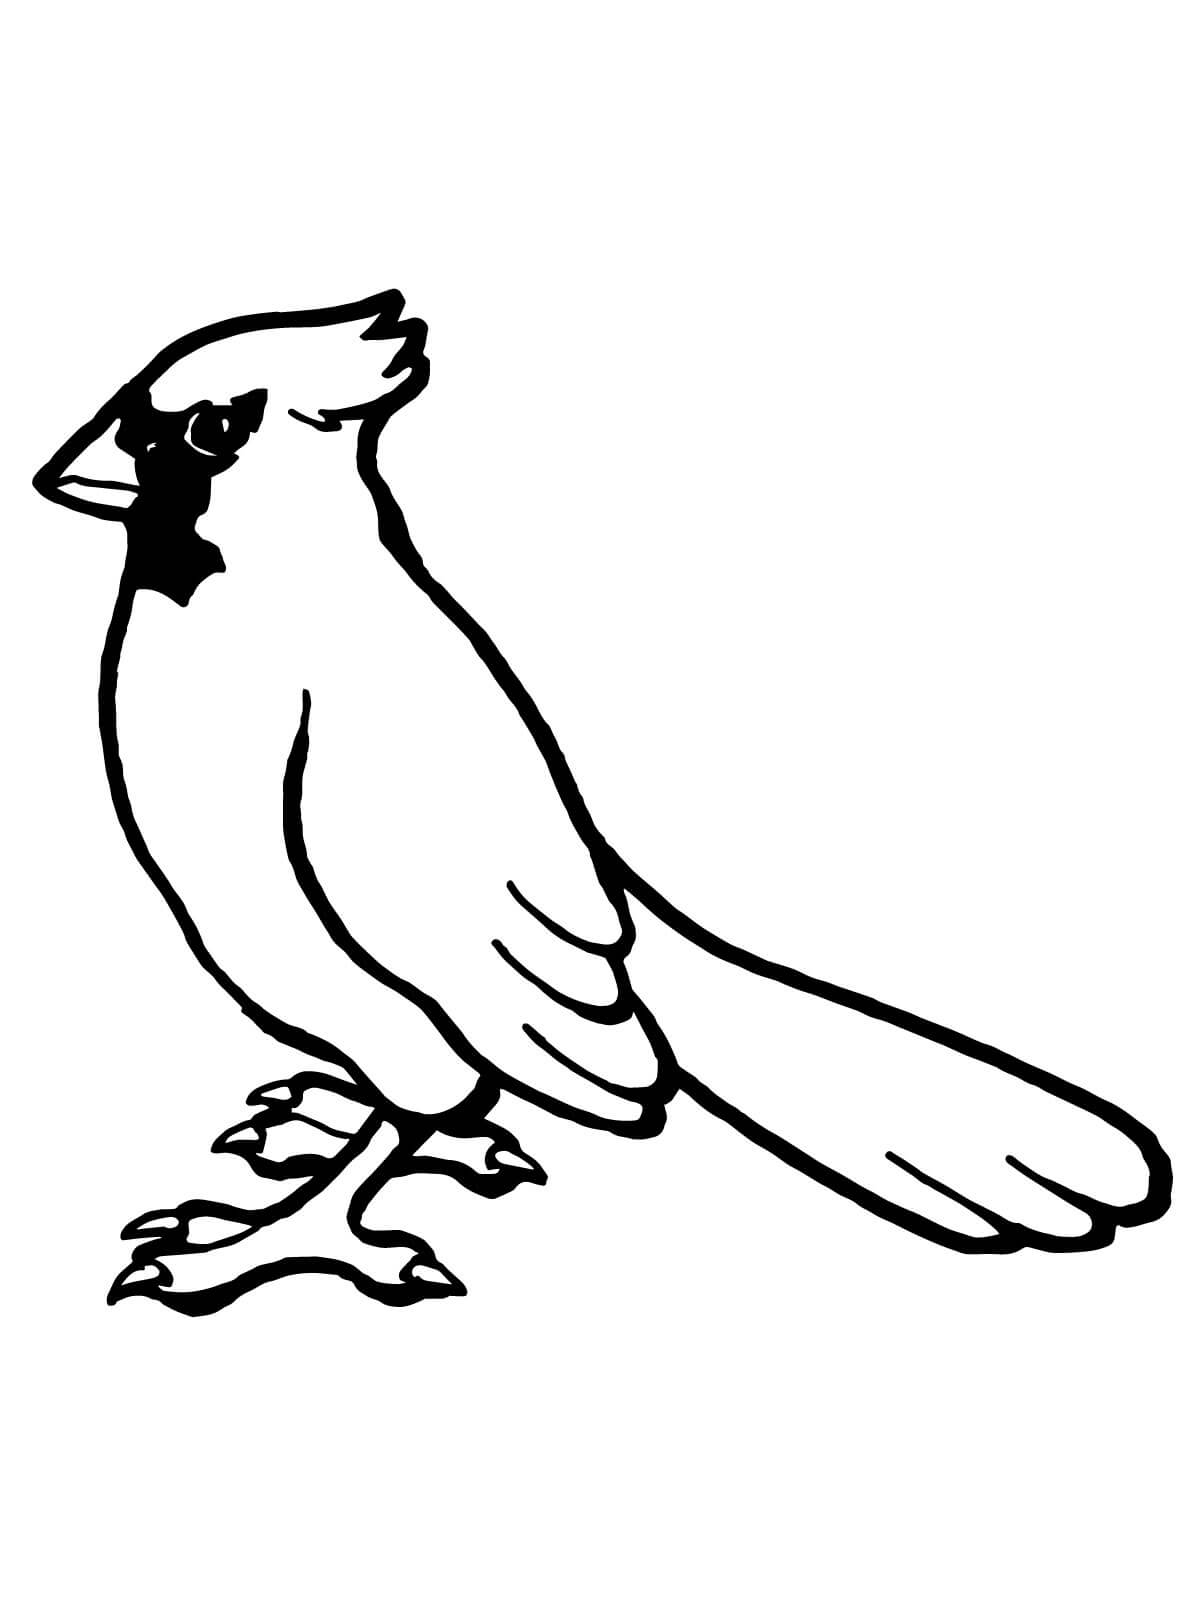 cardinals coloring pages with multiplication | Cardinal Coloring Pages - Worksheet School